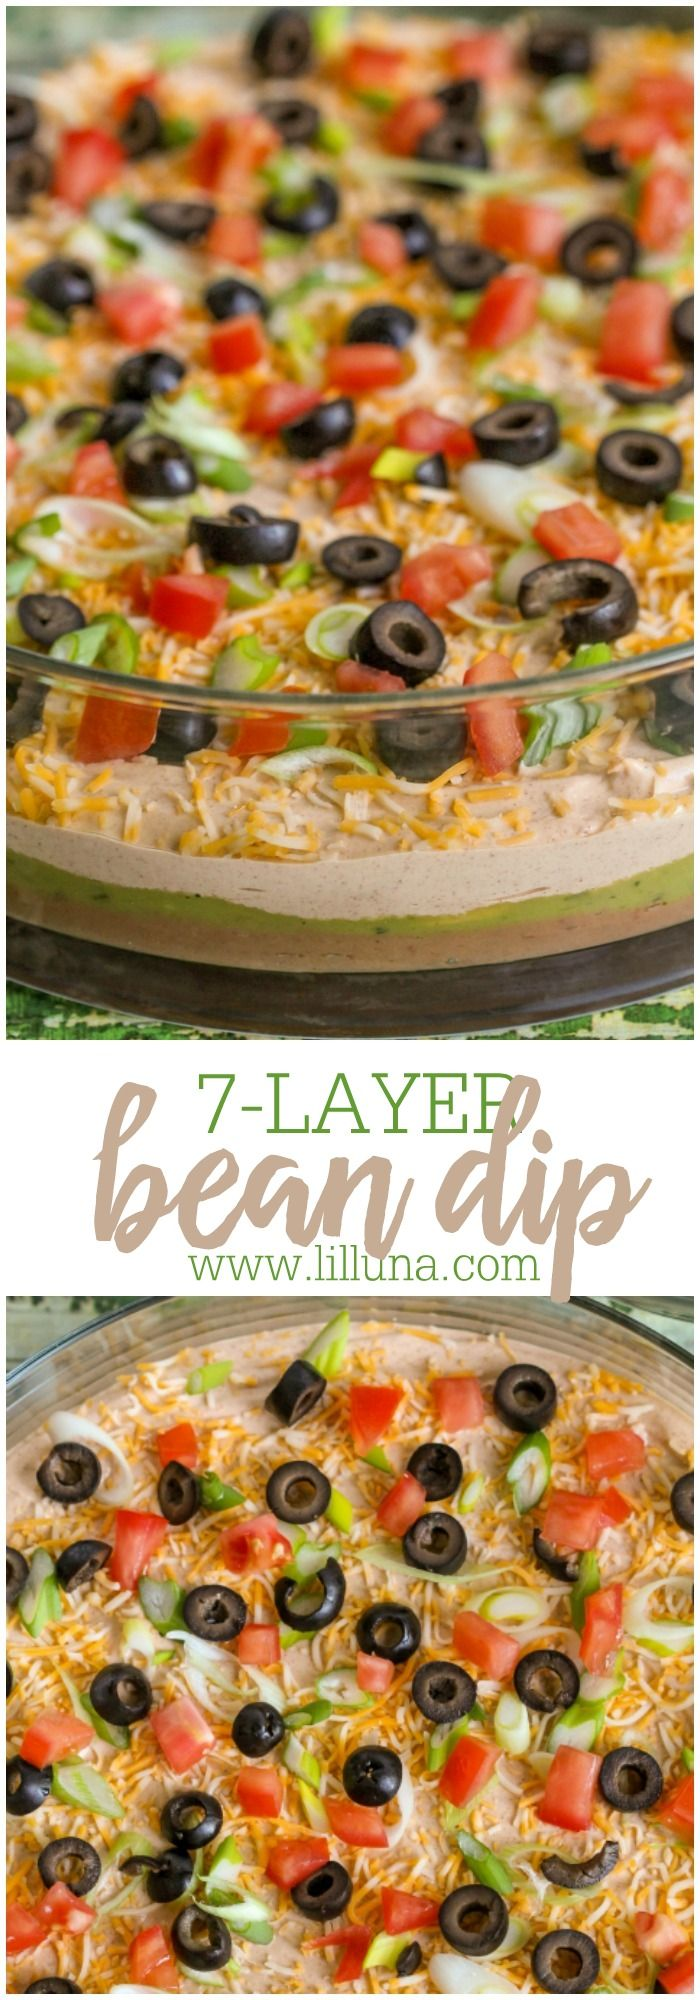 7-Layer Bean Dip - our family's favorite recipe with loads of flavor and all your favorite dip ingredients including avocados, olives, tomatoes, cheese and more! It's a must-have appetizer at most family functions.